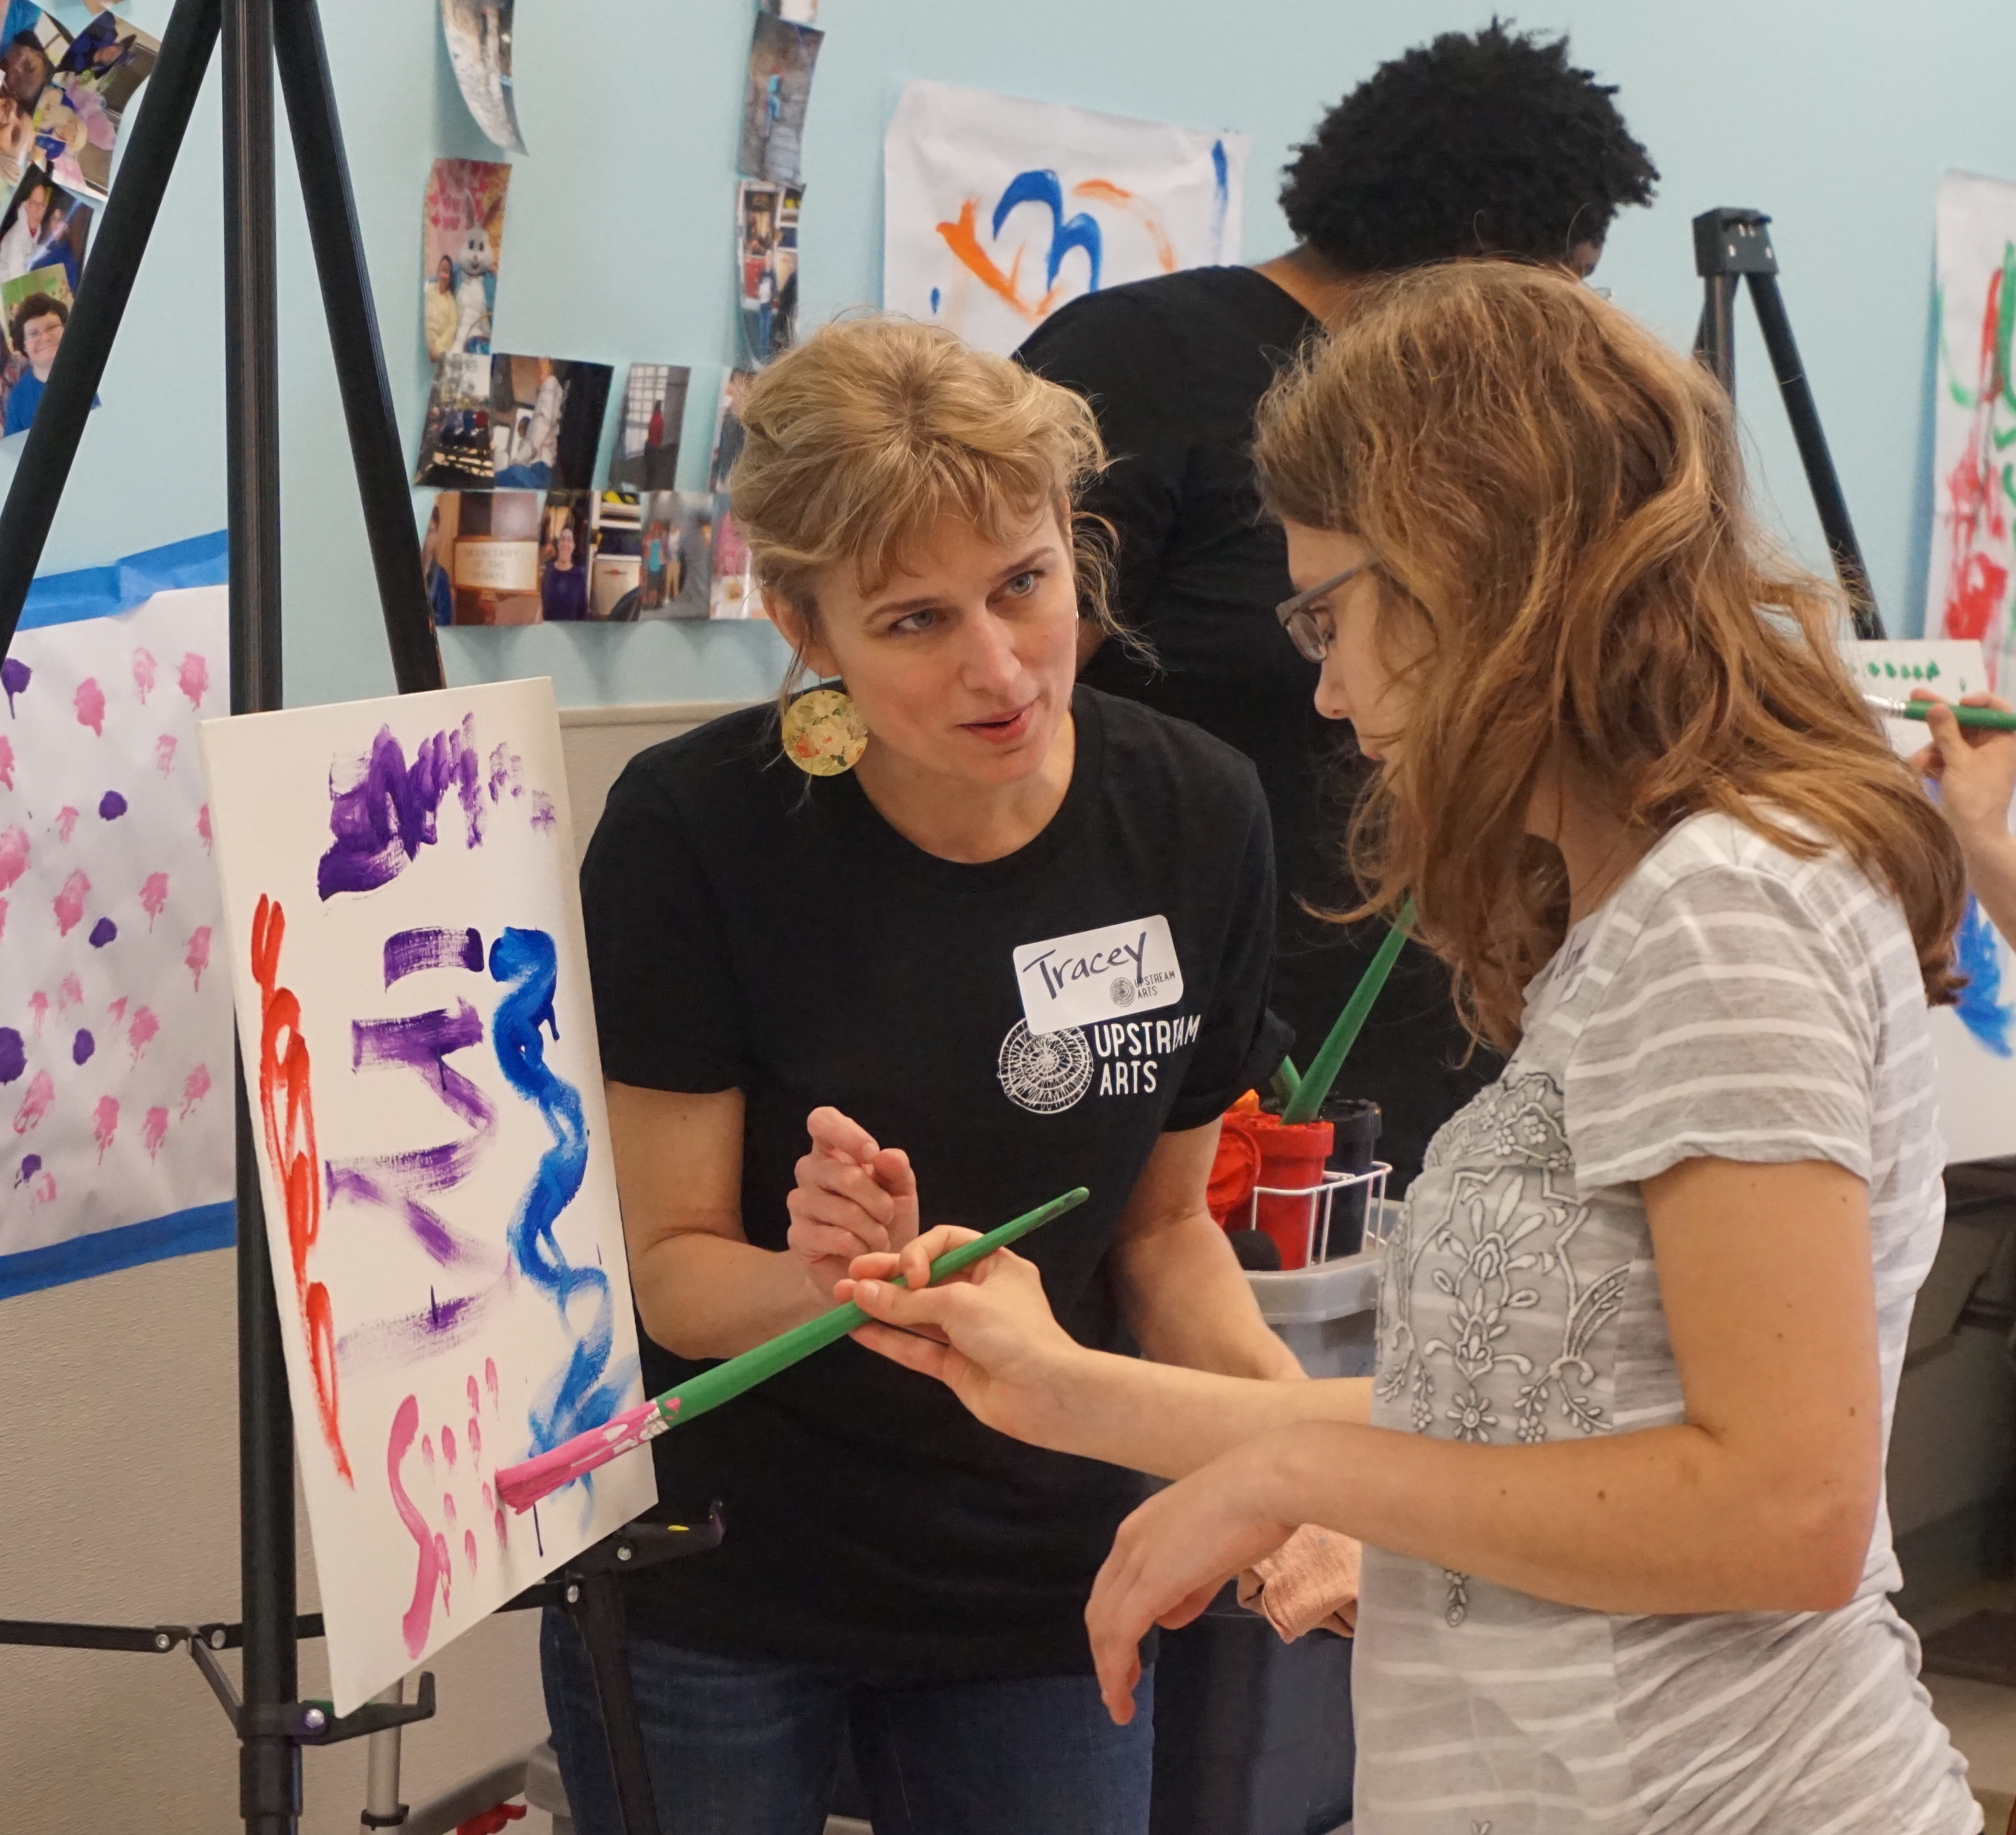 Upstream Arts Teaching Artist and Participant paint together.